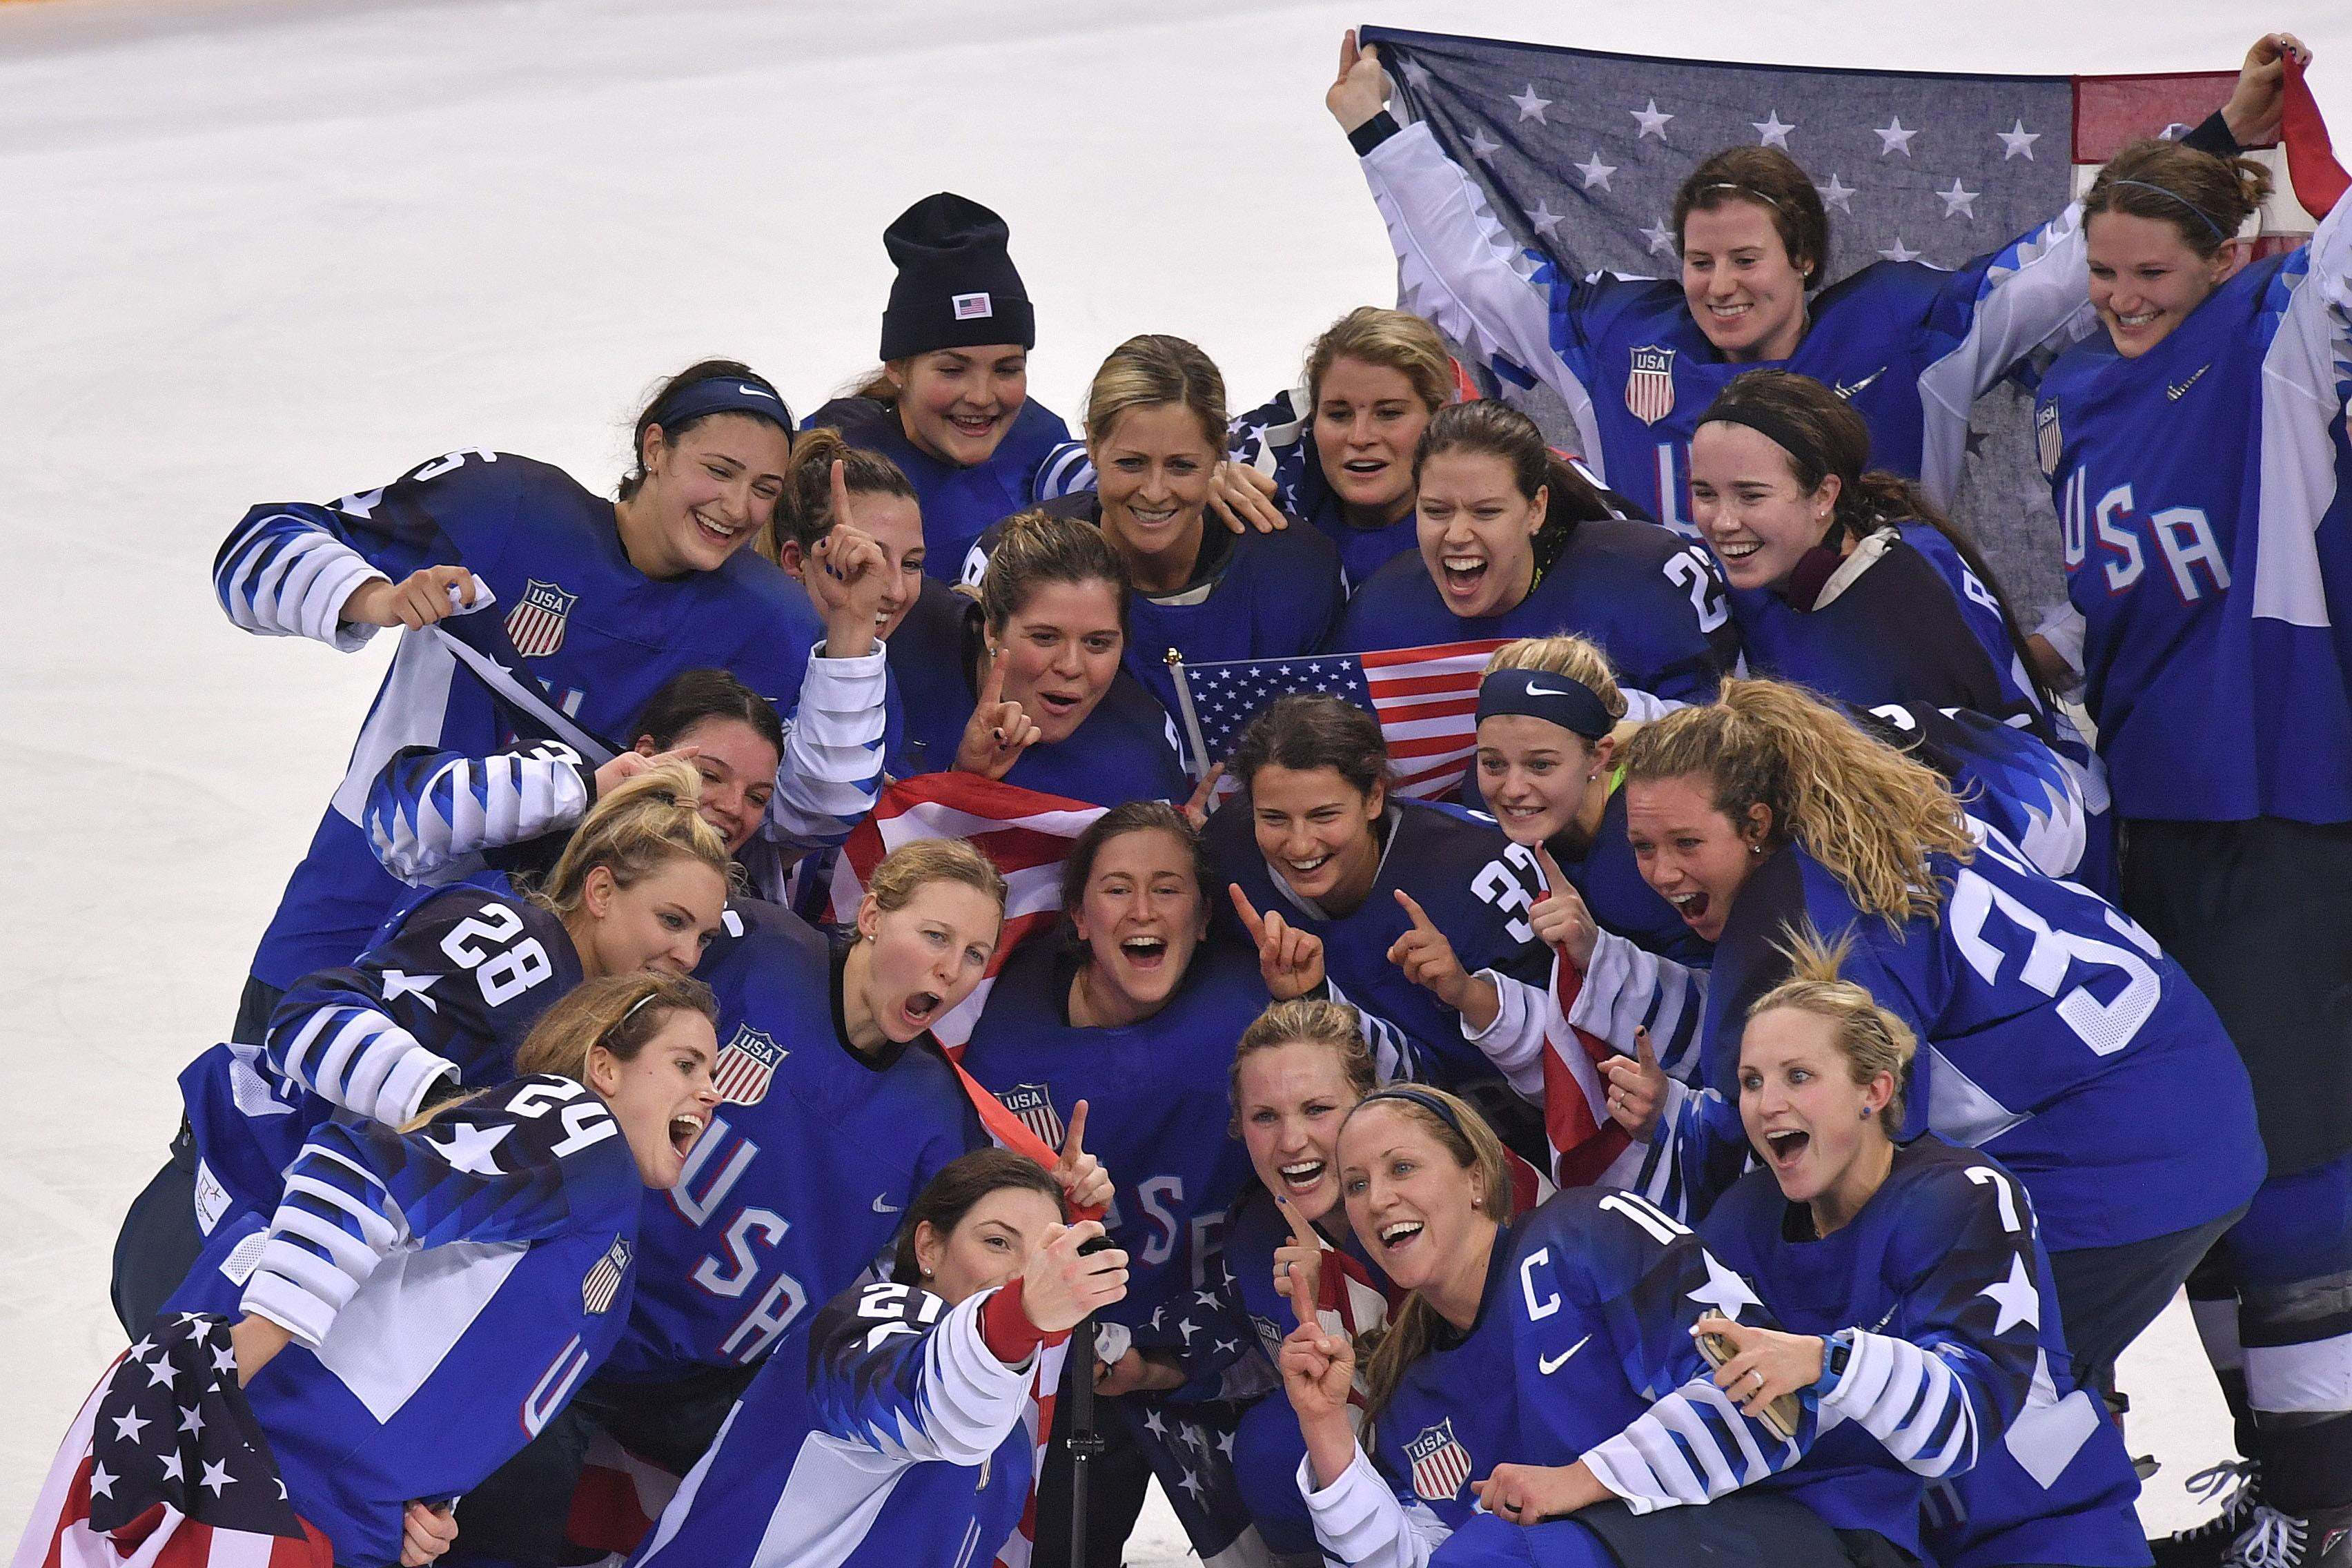 TOPSHOT - USA's Hilary Knight (21) takes a selfie with her team as they celebrate their win after a penalty shootout in the women's gold medal ice hockey match between Canada and the US during the Pyeongchang 2018 Winter Olympic Games at the Gangneung Hockey Centre in Gangneung on February 22, 2018.  / AFP PHOTO / Ed JONES        (Photo credit should read ED JONES/AFP/Getty Images)